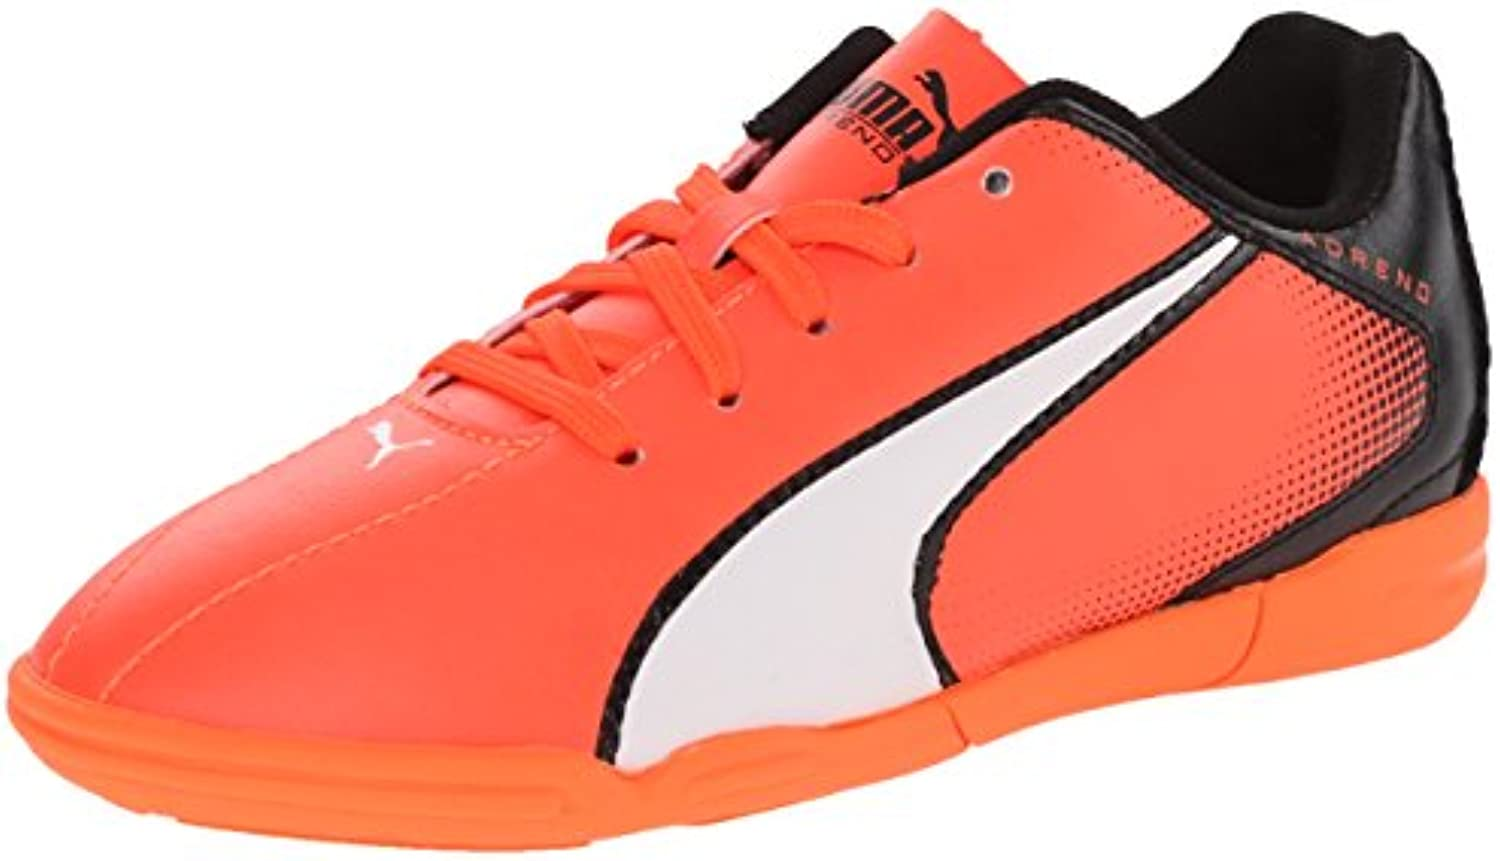 Puma Adreno Indoor Jr Soccer Shoe